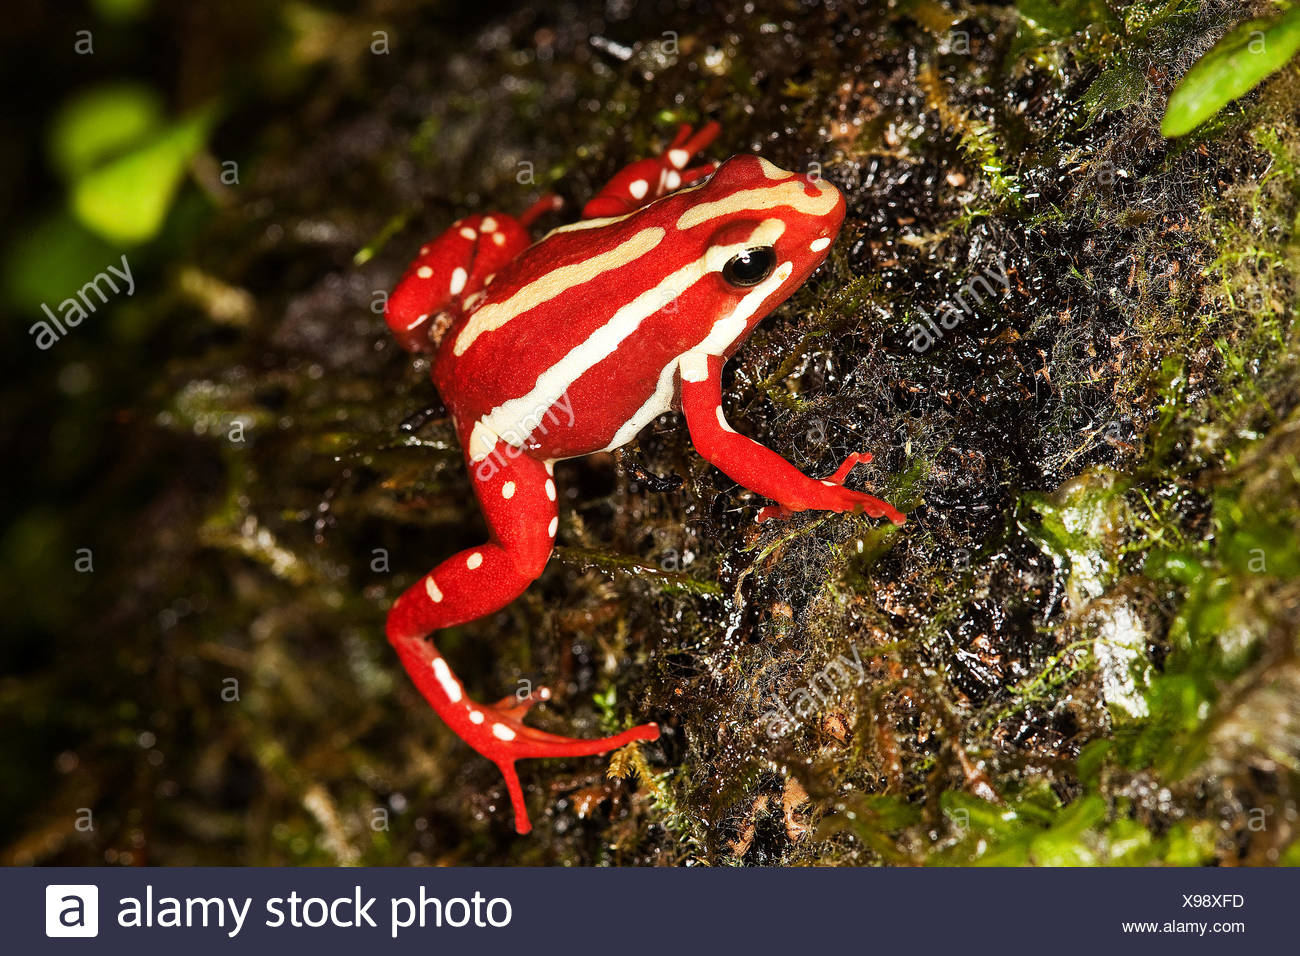 Phantasmal Poison Frog, epipedobates tricolor, Adult, Venomous Frog from South America - Stock Image